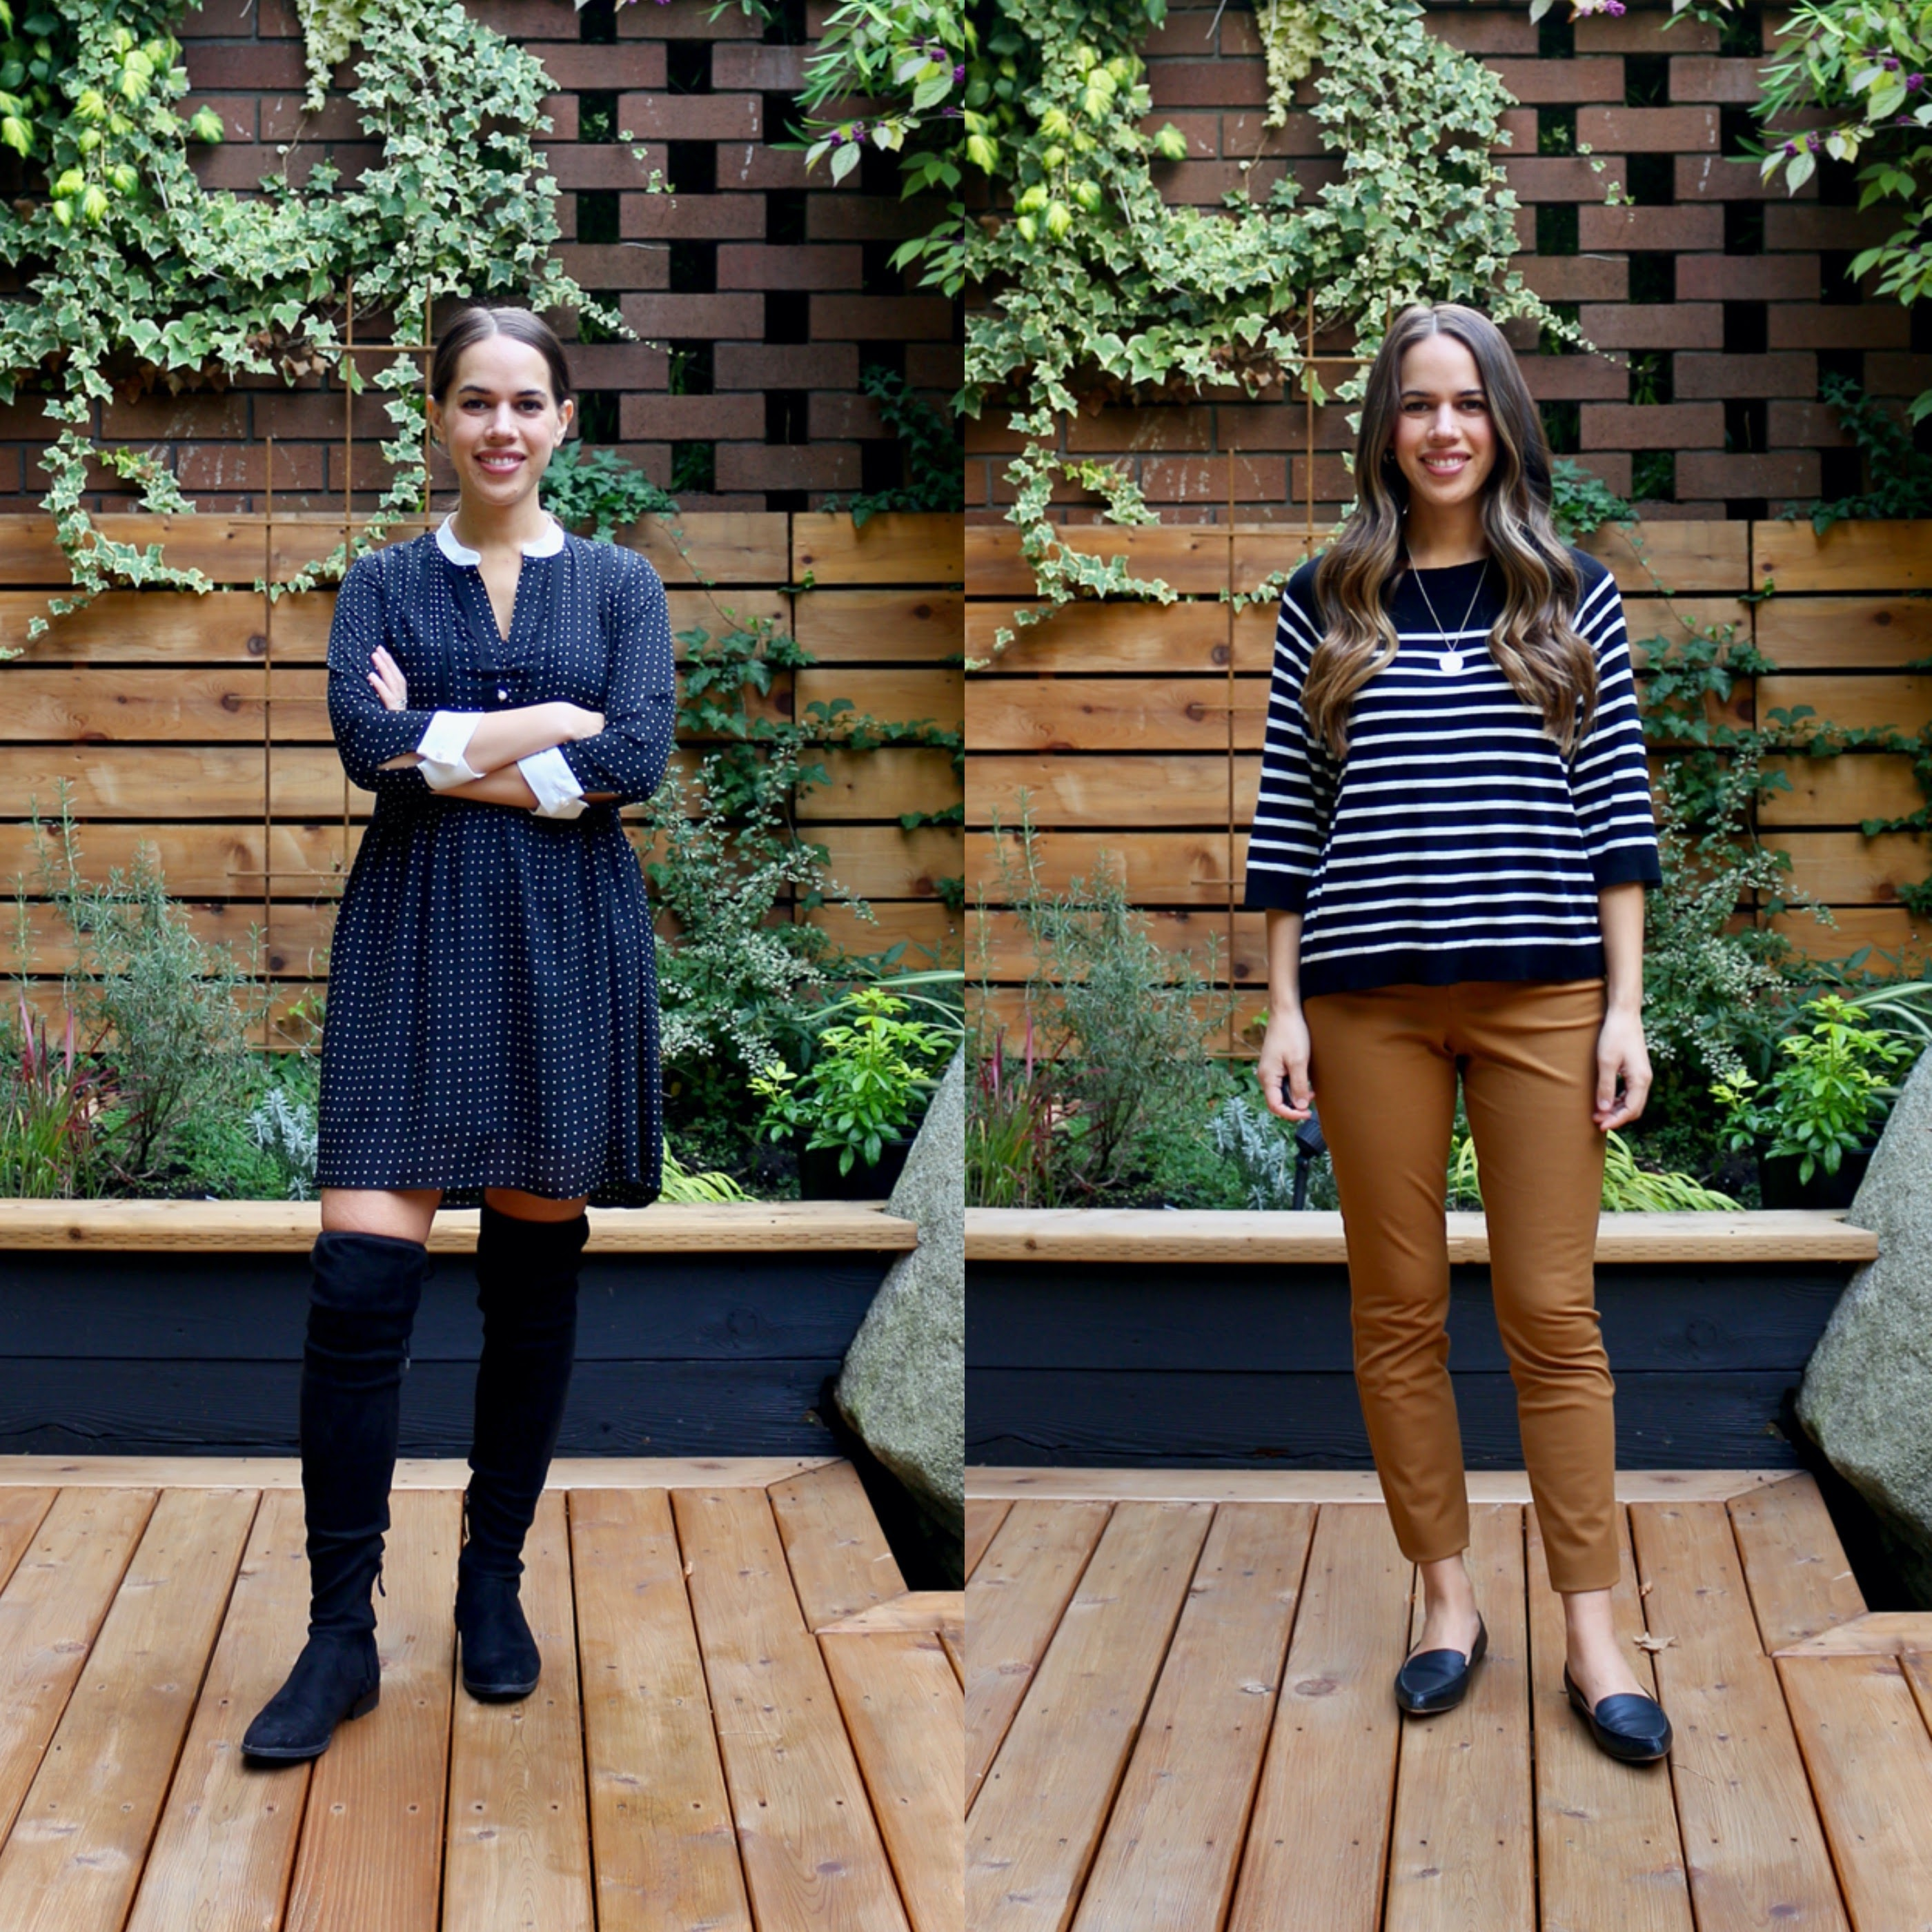 Jules in Flats - What I Wore to Work in October (Week 3)